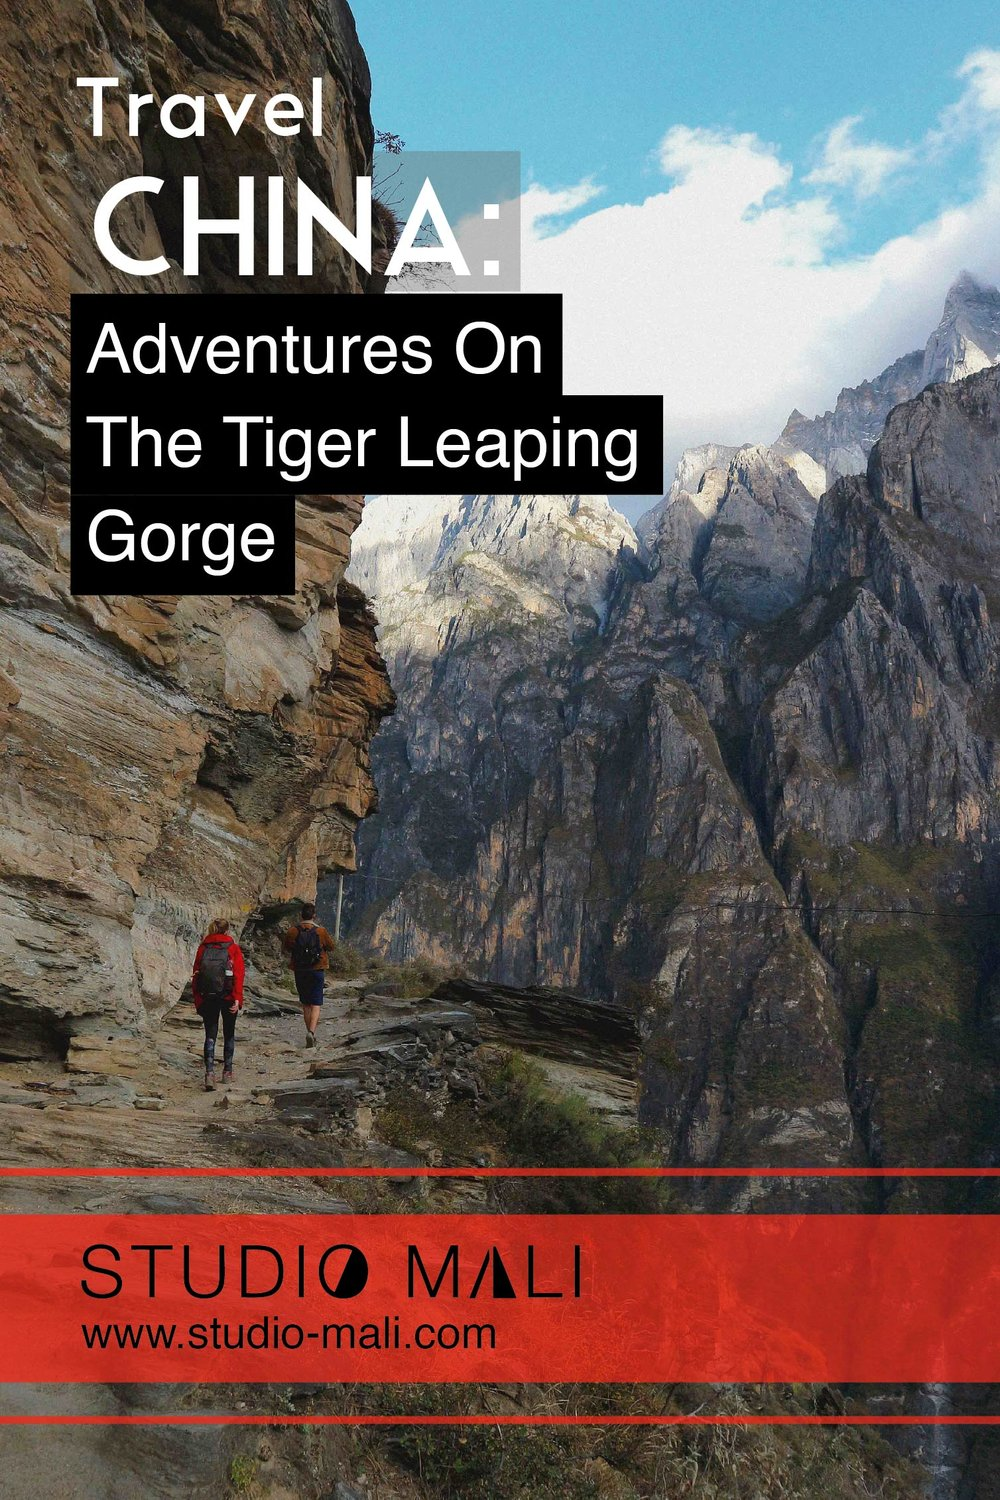 China: Adventures On The Tiger Leaping Gorge, By Studio Mali